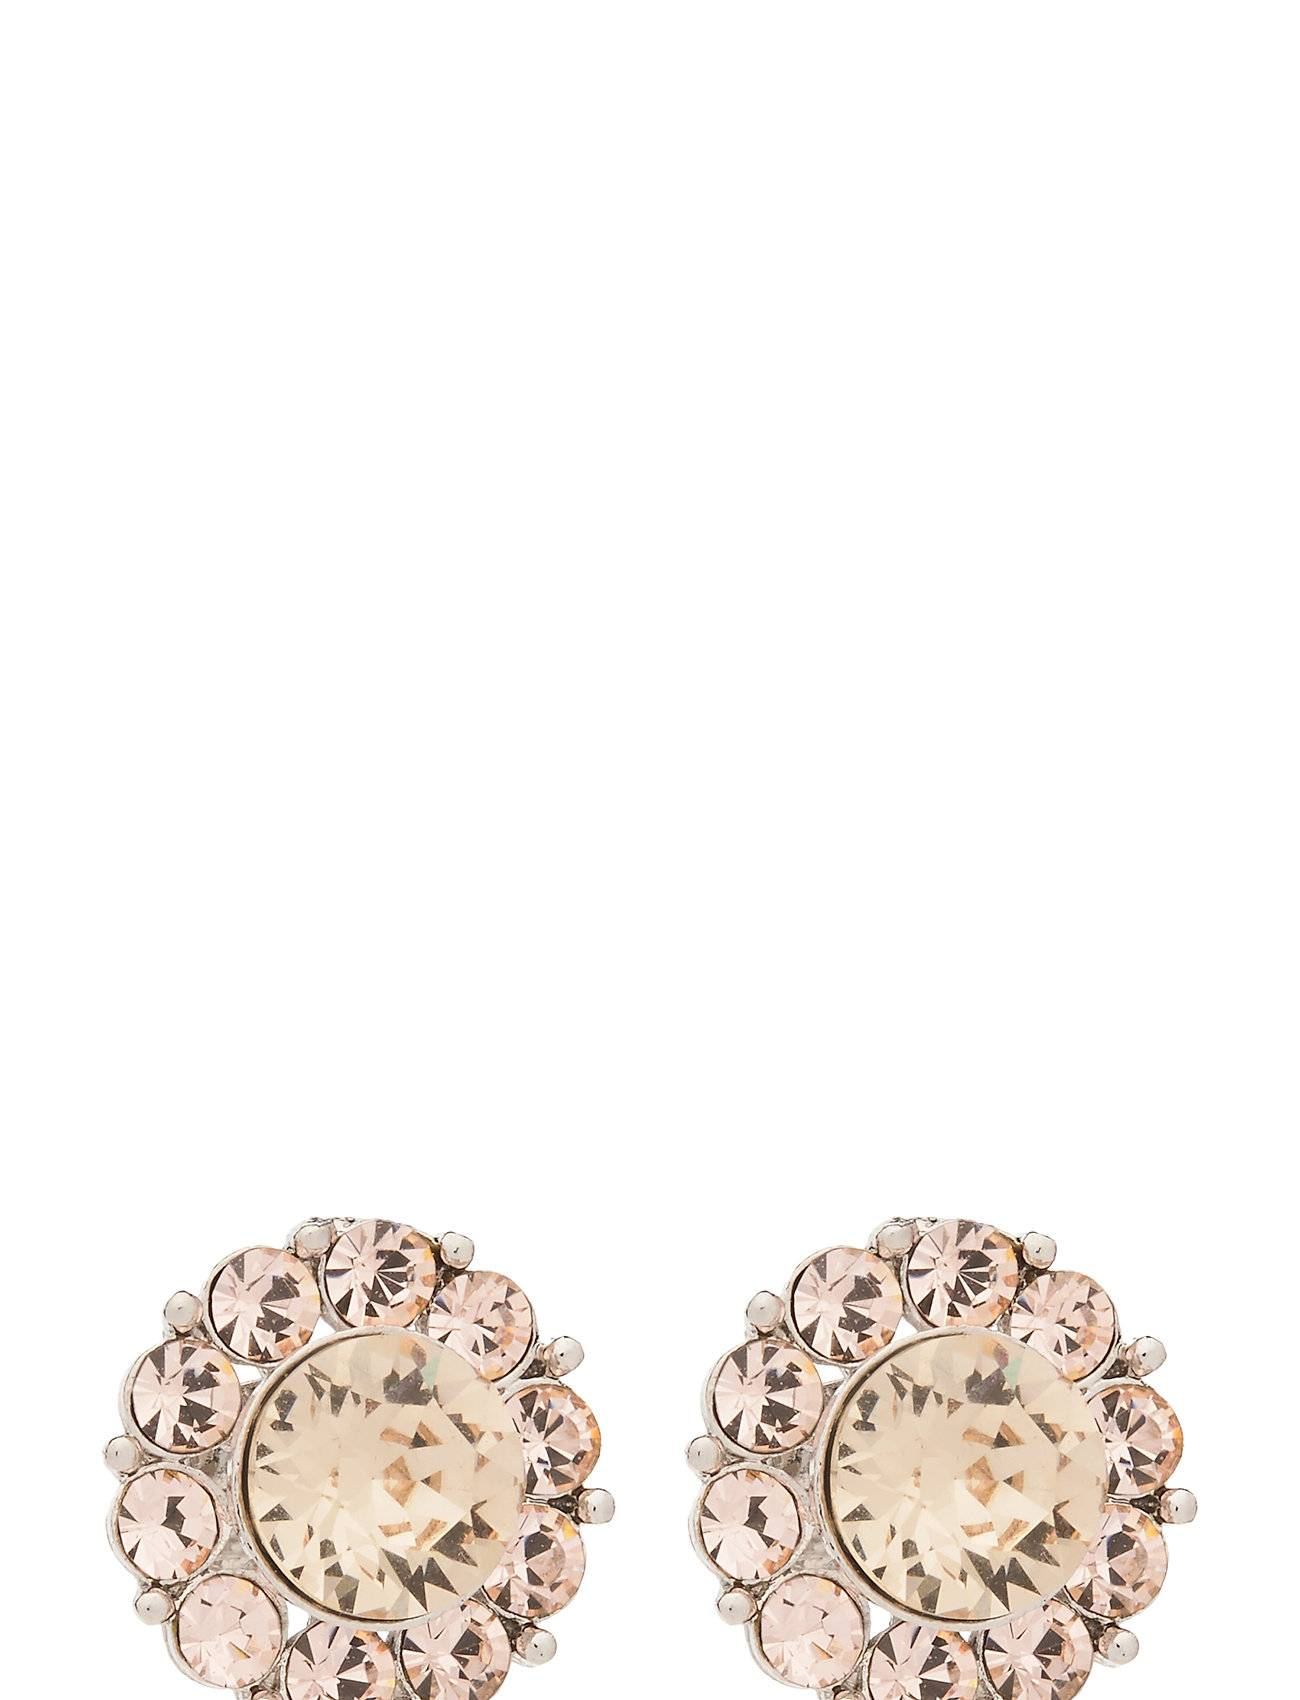 LILY AND ROSE Miss Sofia Earrings - Light Silk Accessories Jewellery Earrings Studs Kulta LILY AND ROSE